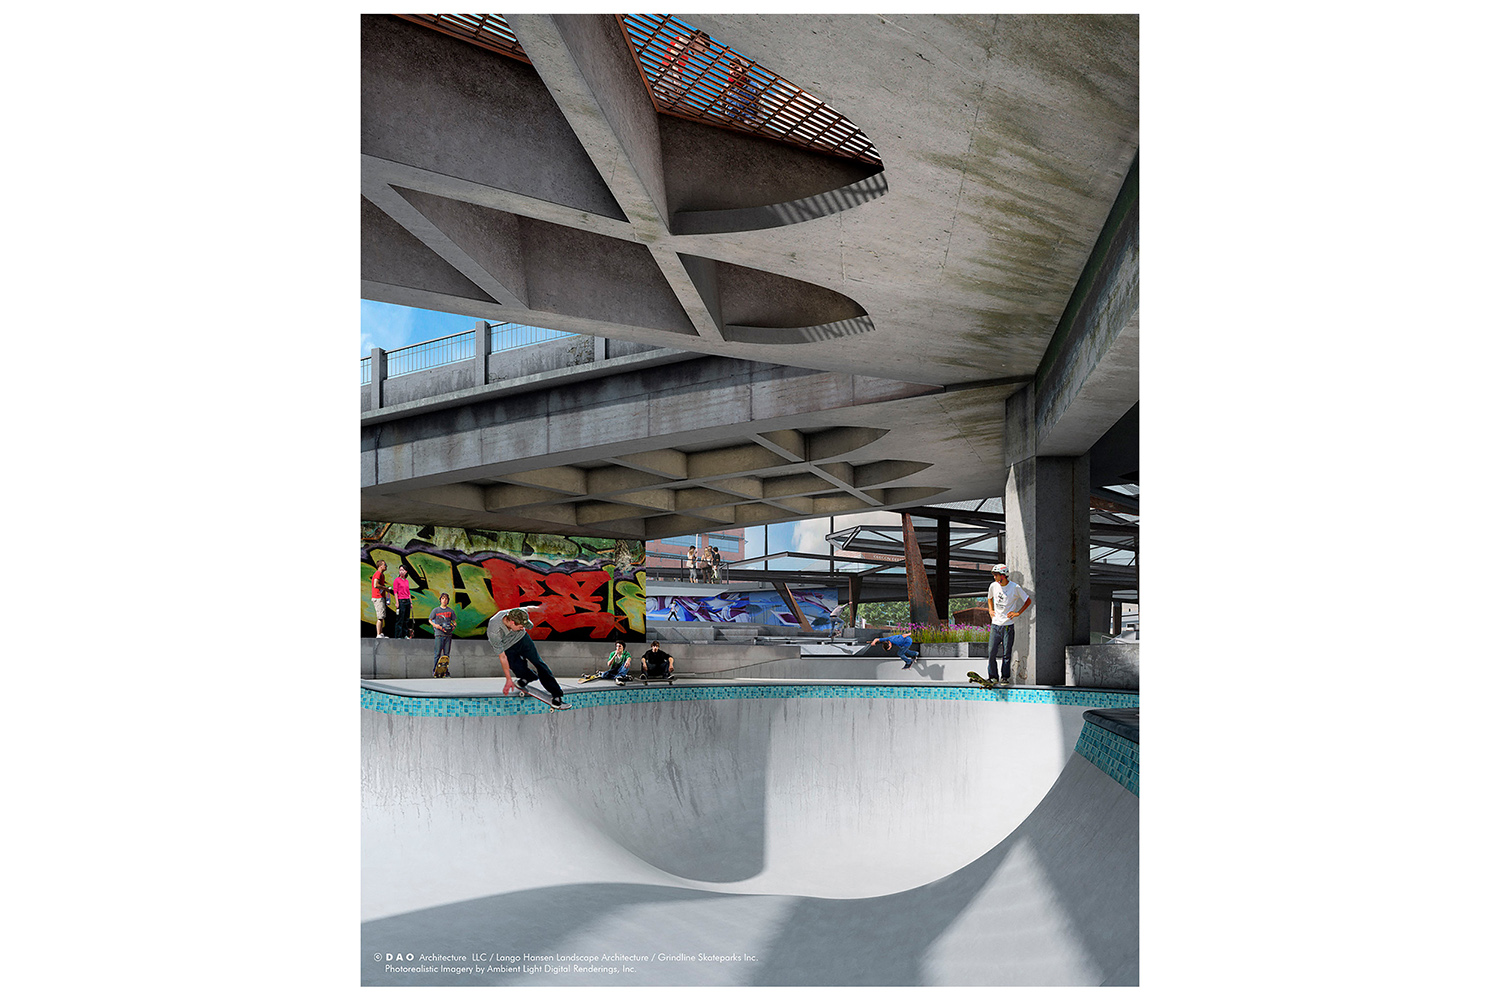 An early rendering showing a bowl section of the 30,000 square foot ODOT Steel Bridge Skatepark project.